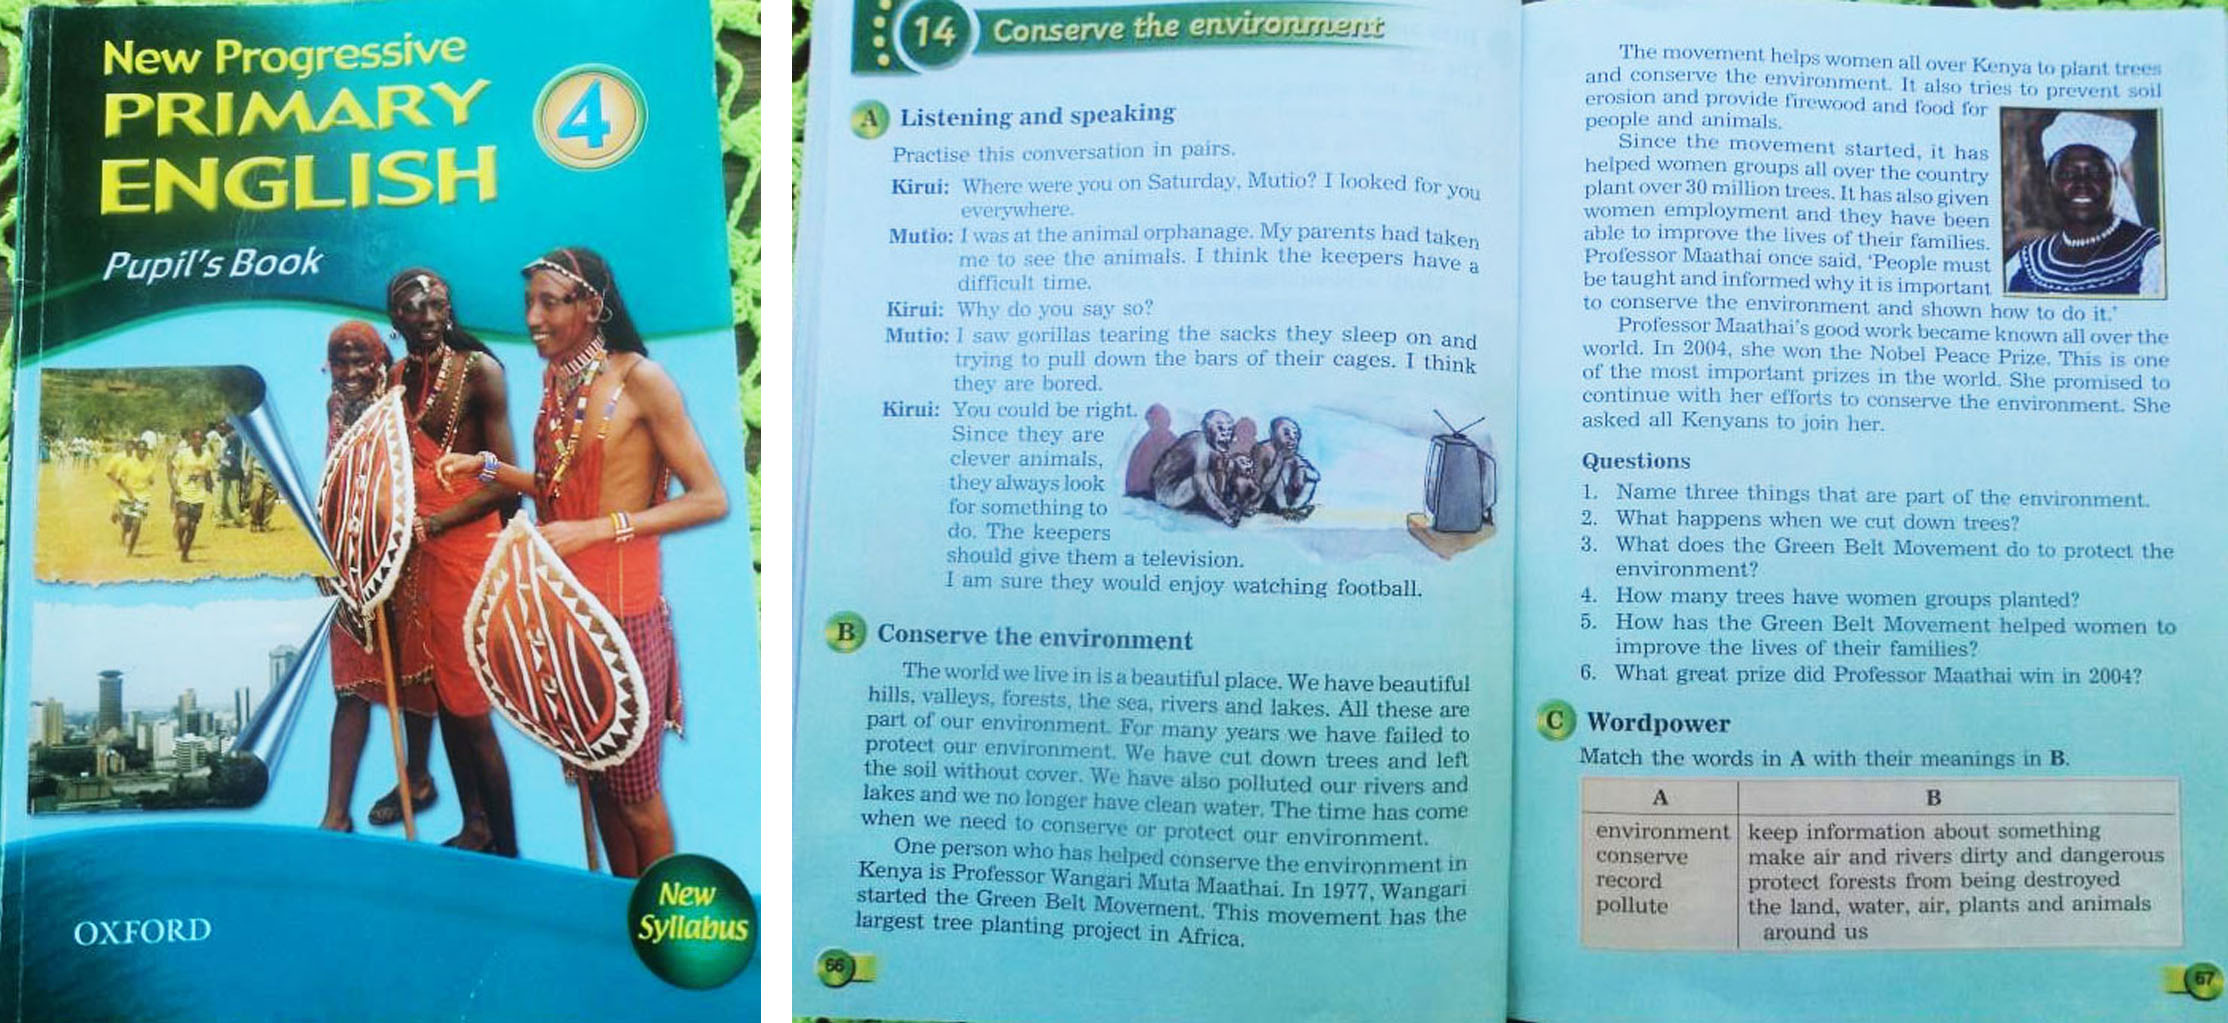 Left: The School Text book from which pupils learn about Environmental Conservation, Right: inside the book where the notes and assignment was drawn from.